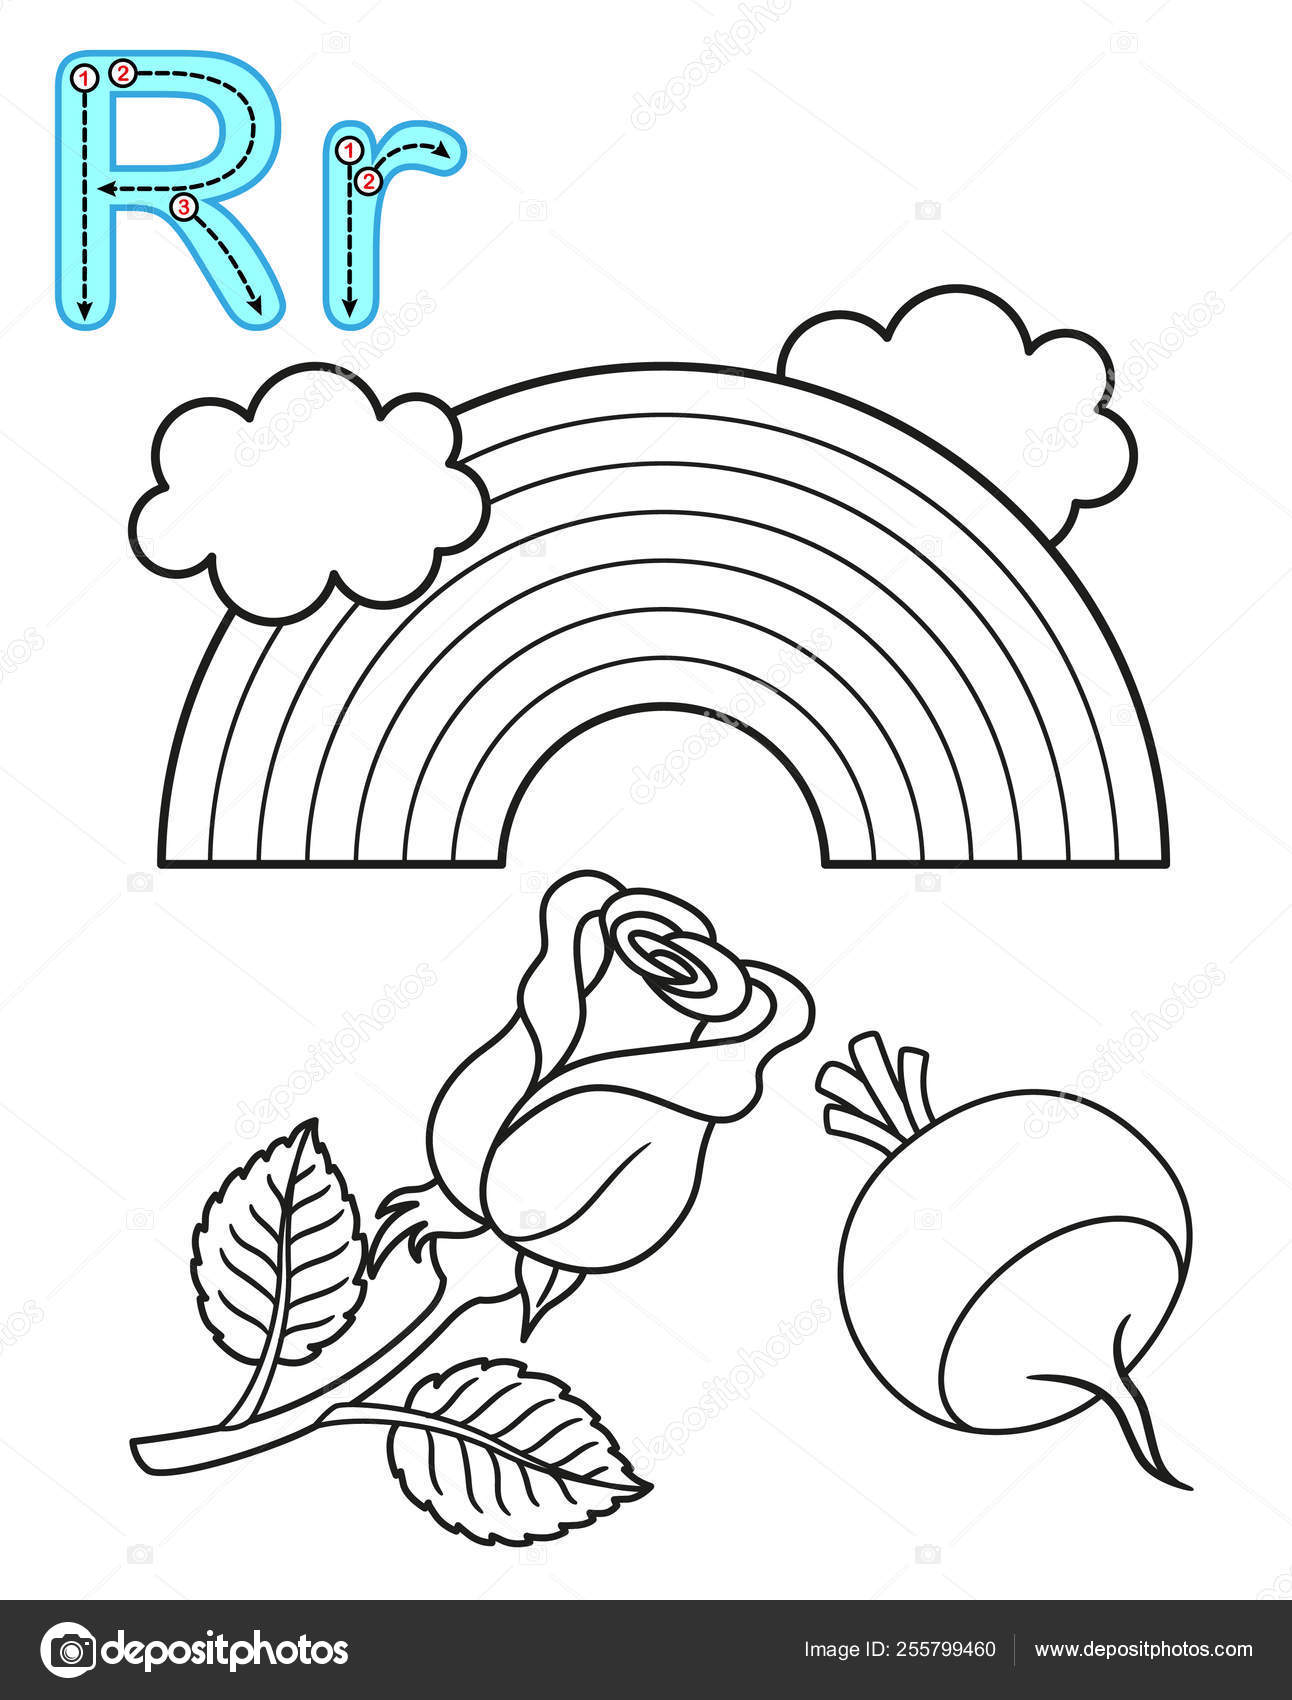 Printable Coloring Page For Kindergarten And Preschool. Card For ... | 1700x1292